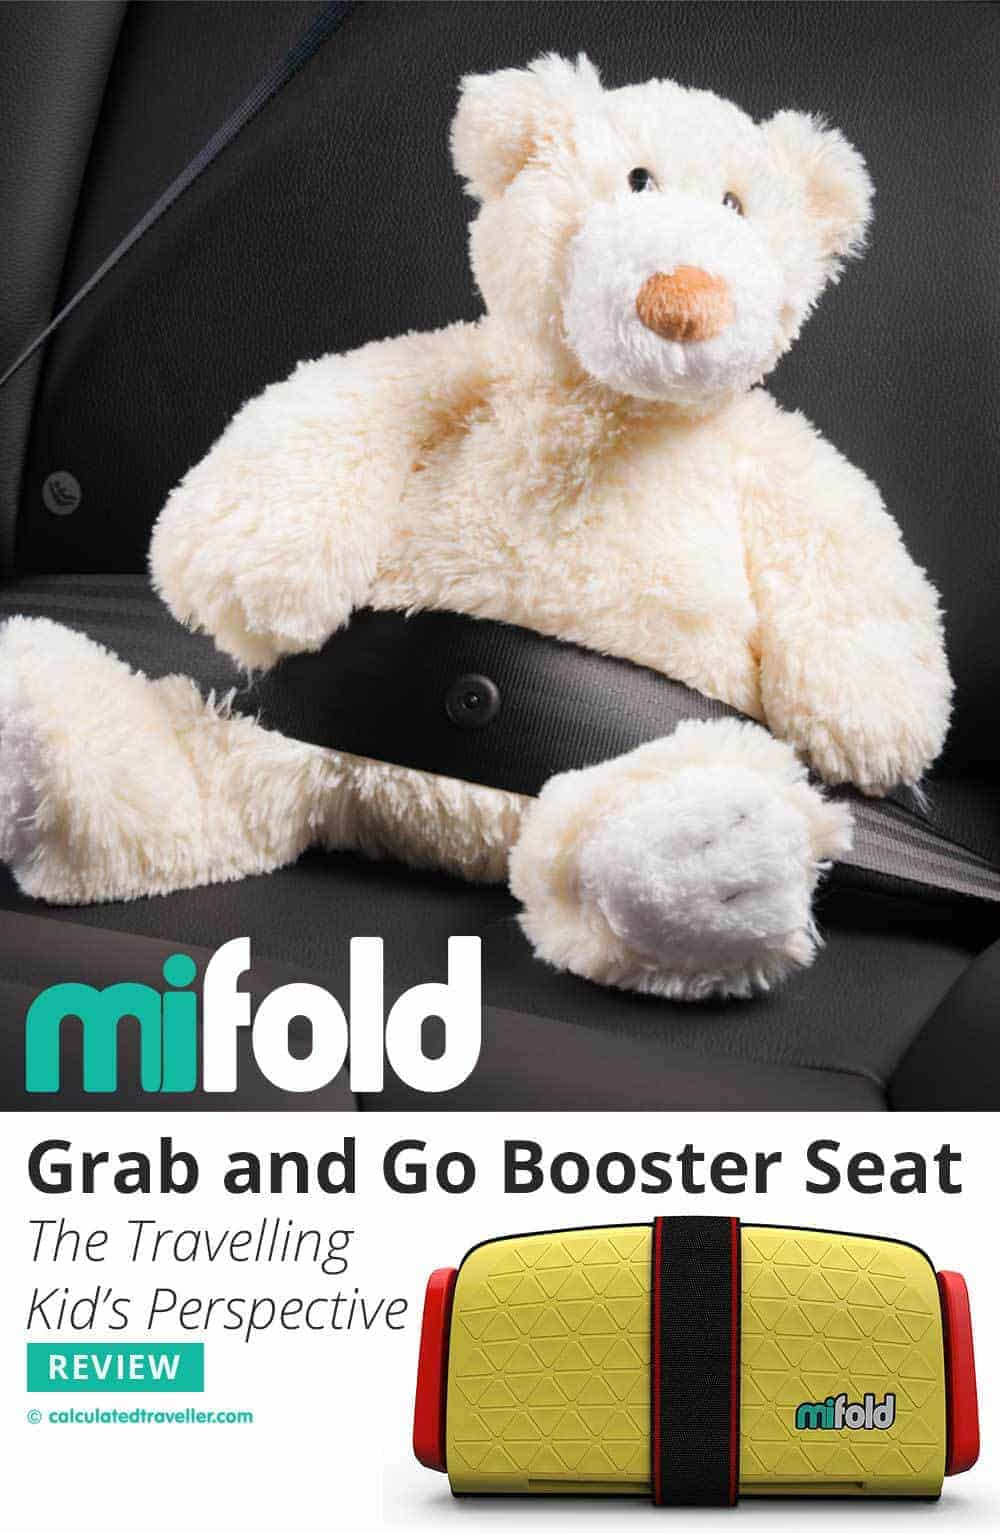 Product Review: mifold Grab-and-Go Booster Seat. The Travelling Kid's Perspective by Calculated Traveller